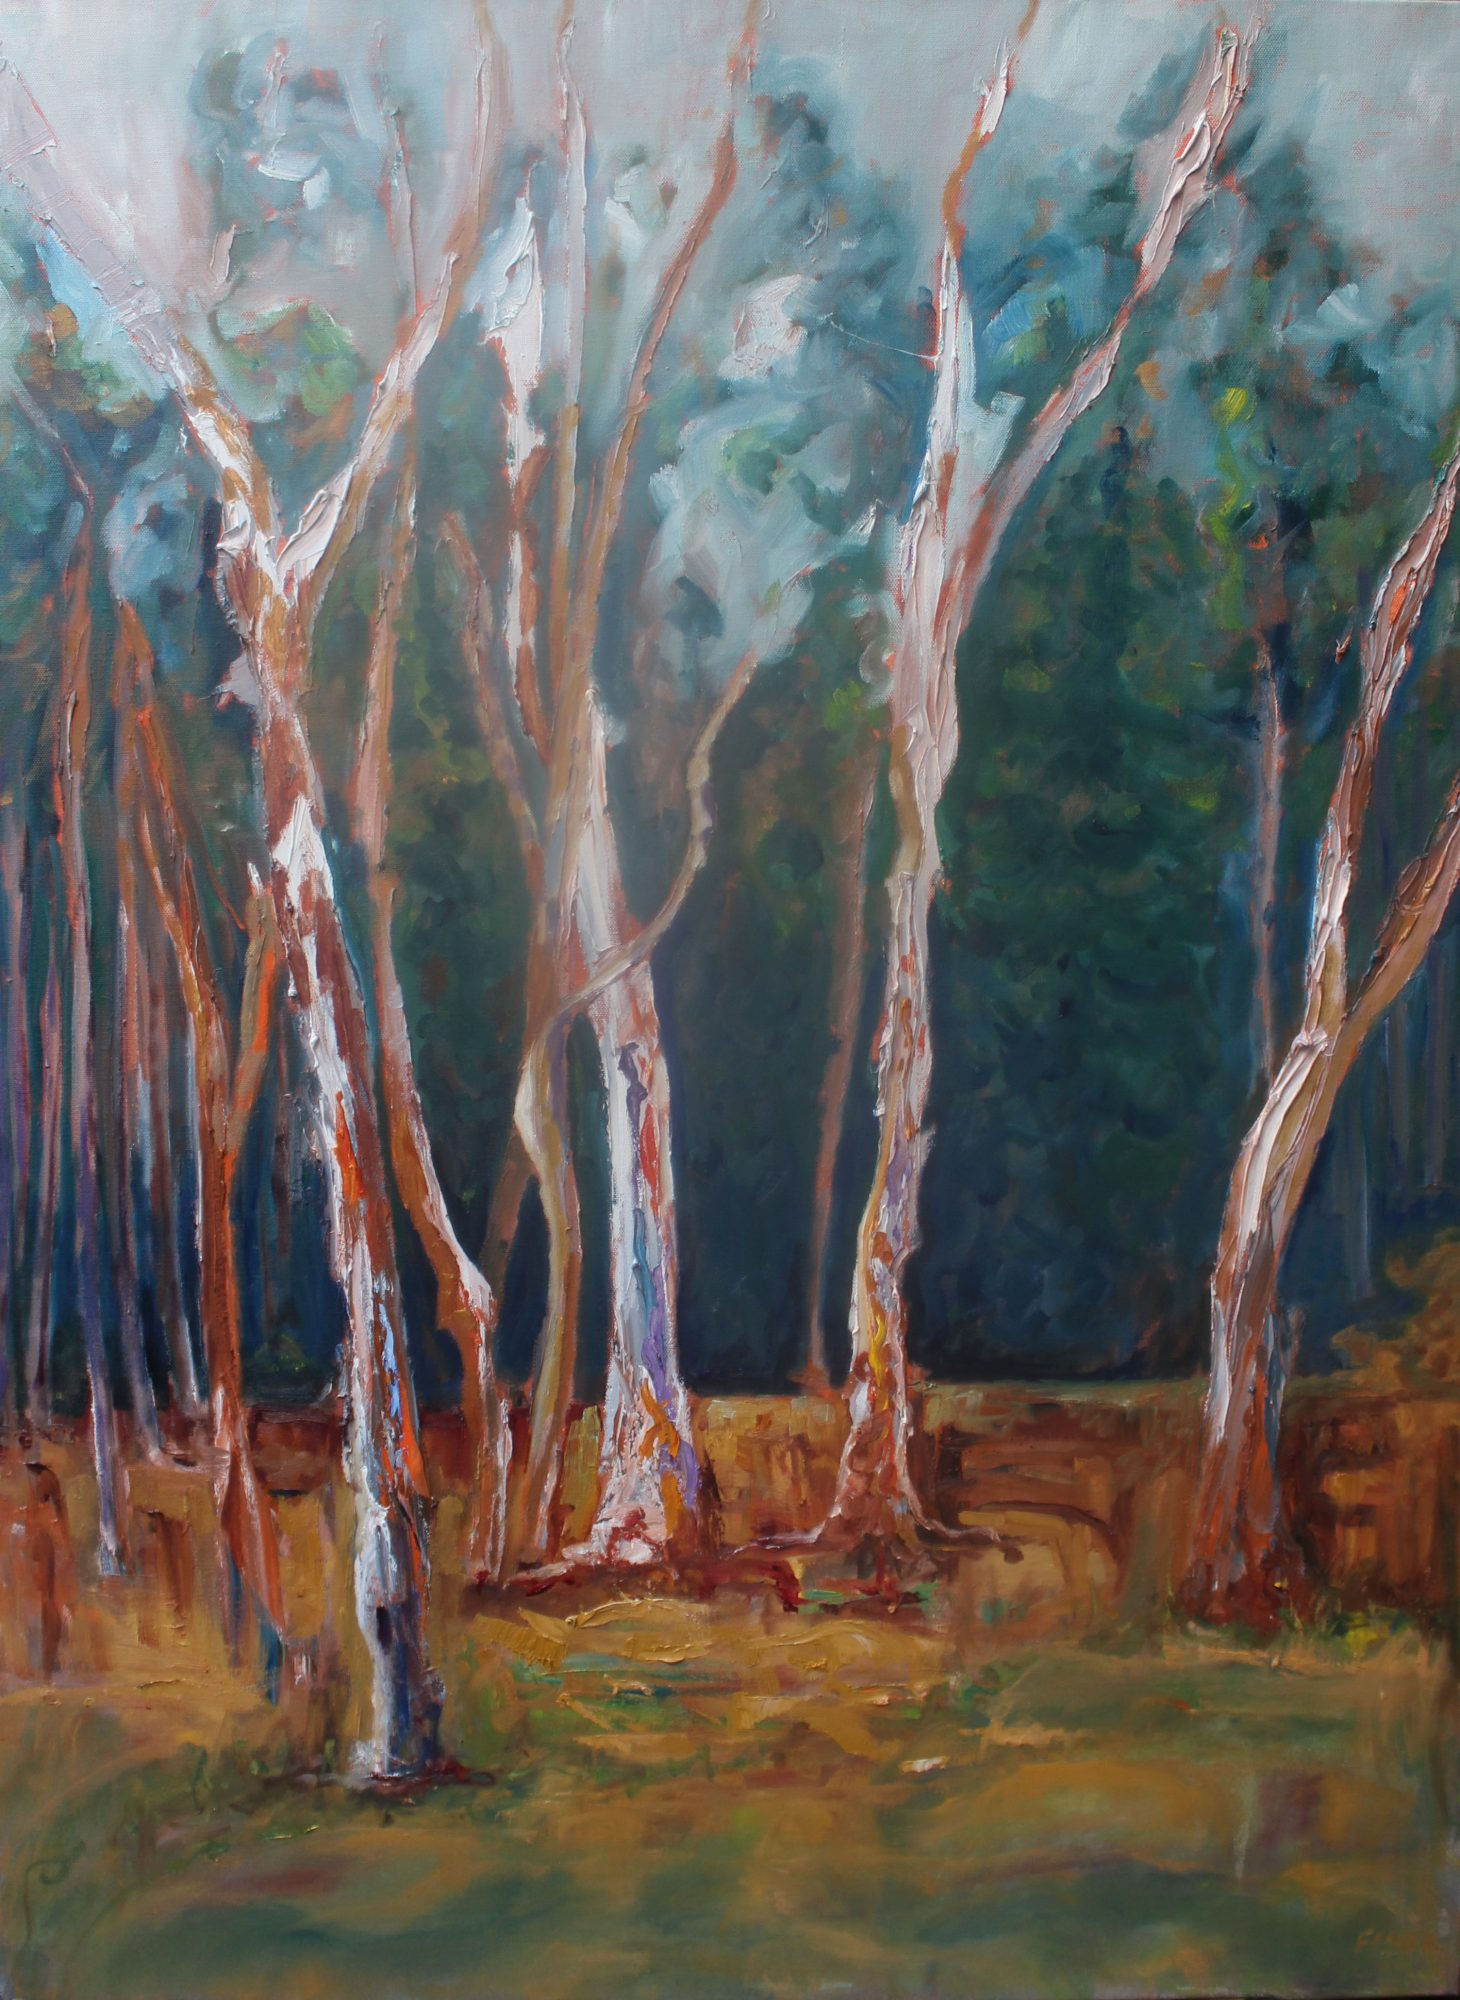 where-gum-trees-meet-the-pine-forest-76x103cm-oil-and-acrylic-on-canvas-600-00-copy